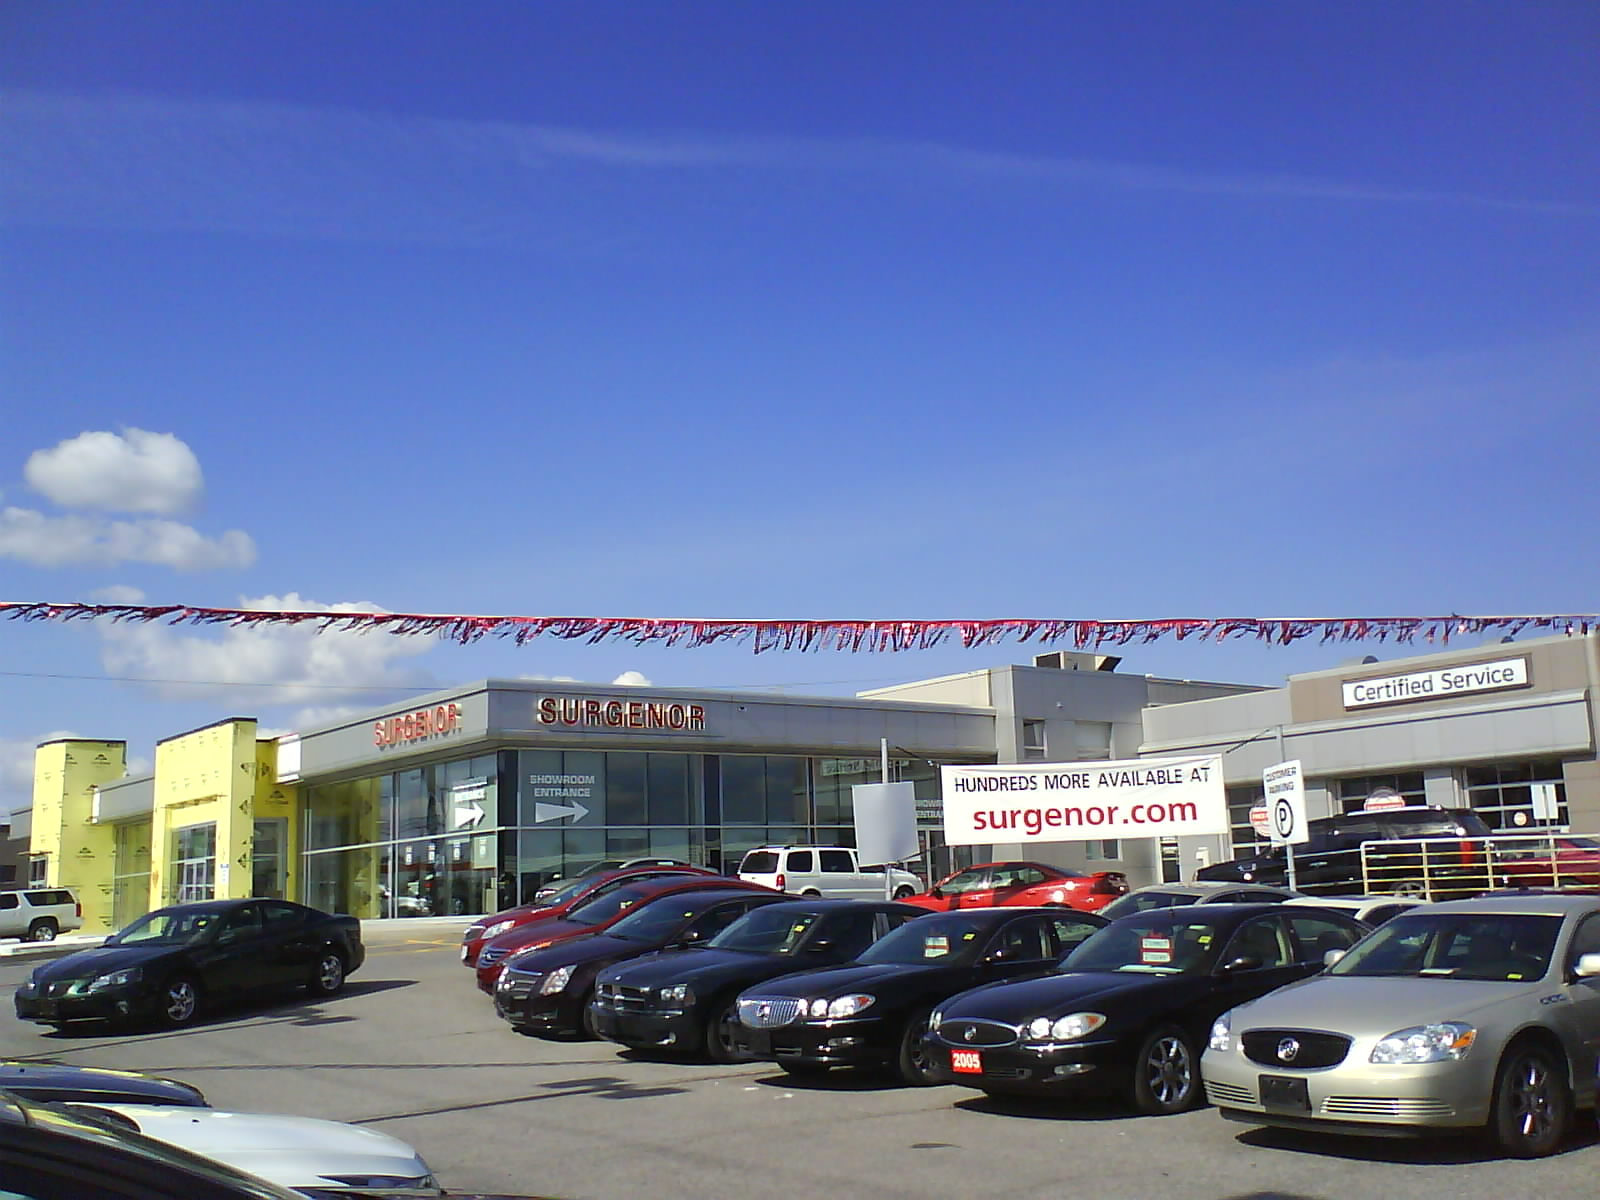 pontiac ca in the san dealer buick photo entrance gmc closed at stock dealership to jose a sign